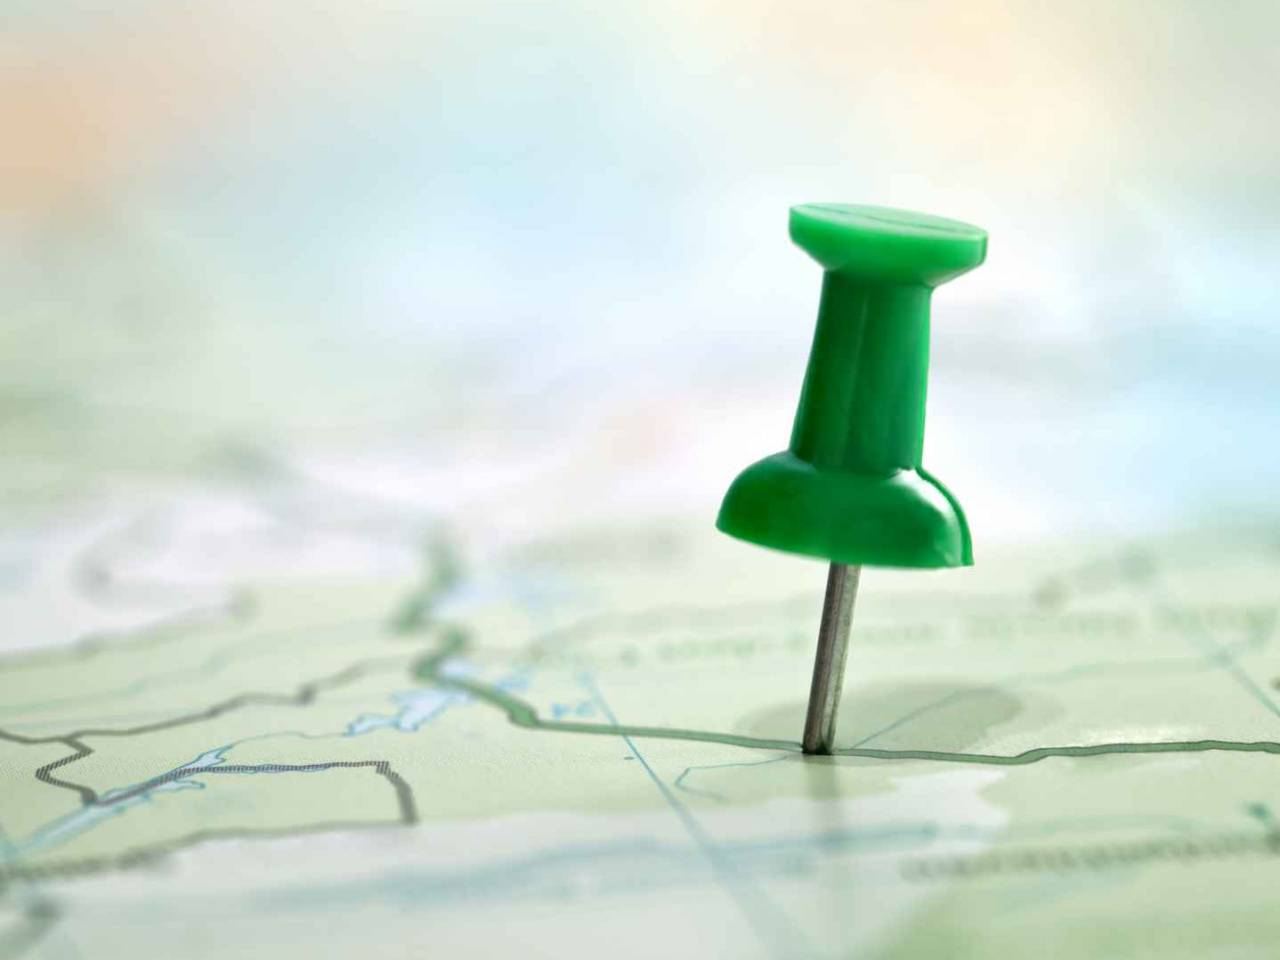 Pushpin showing the location of a destination point on a green map